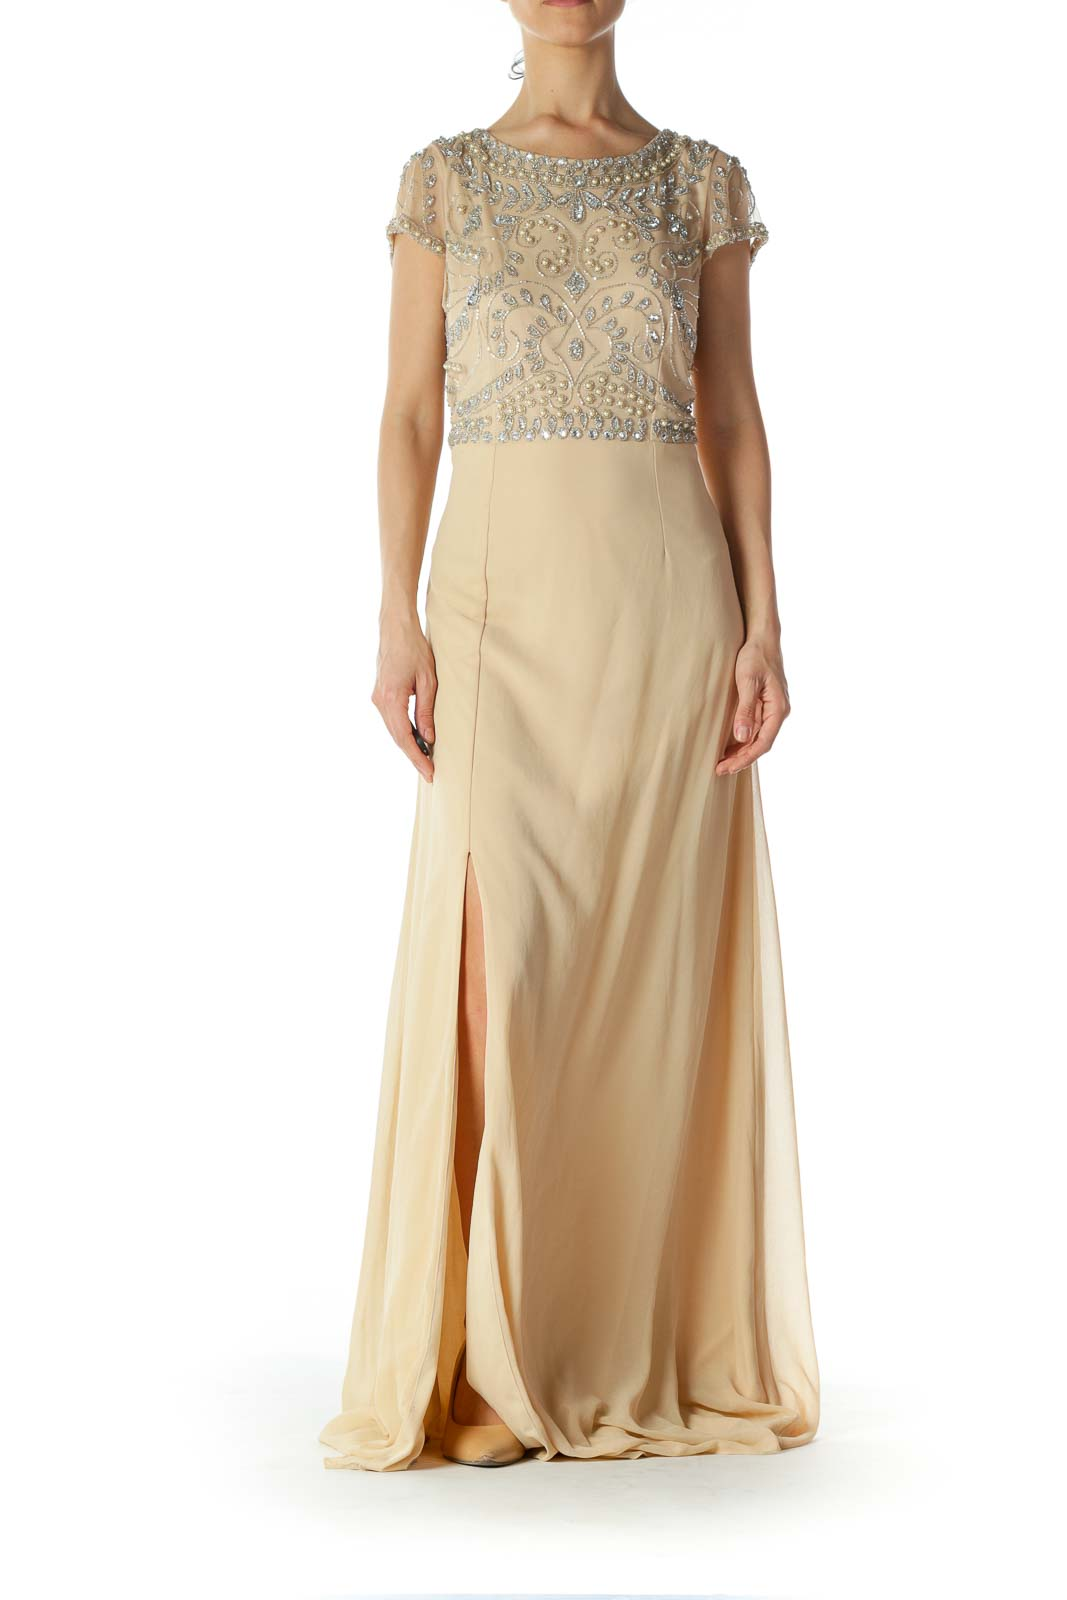 Beige Embellished-Upper Lace Evening Dress